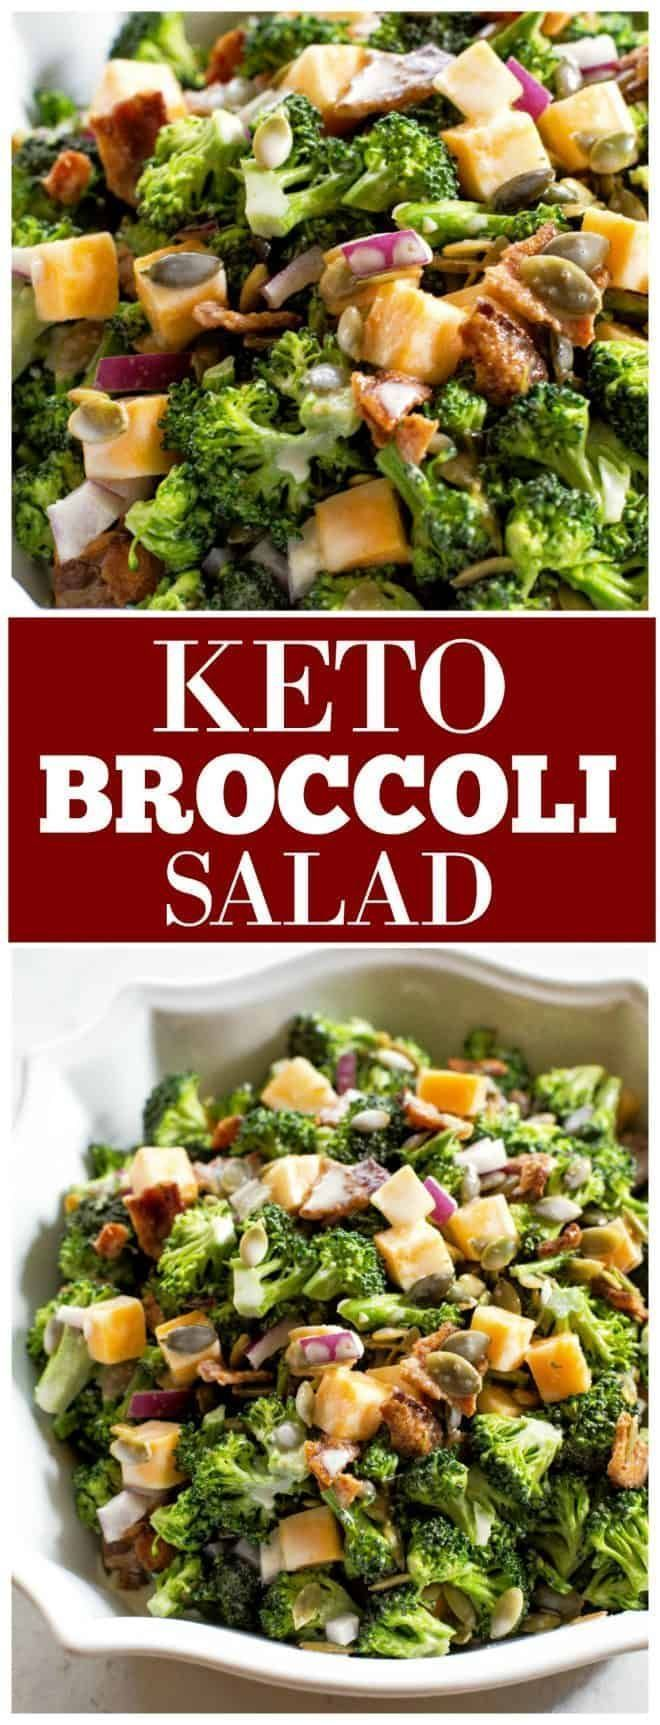 Broccoli Salad  who says you cant have your favorite potluck side dish when on the Keto dietKeto Broccoli Salad  who says you cant have your favorite potluck side dish wh...